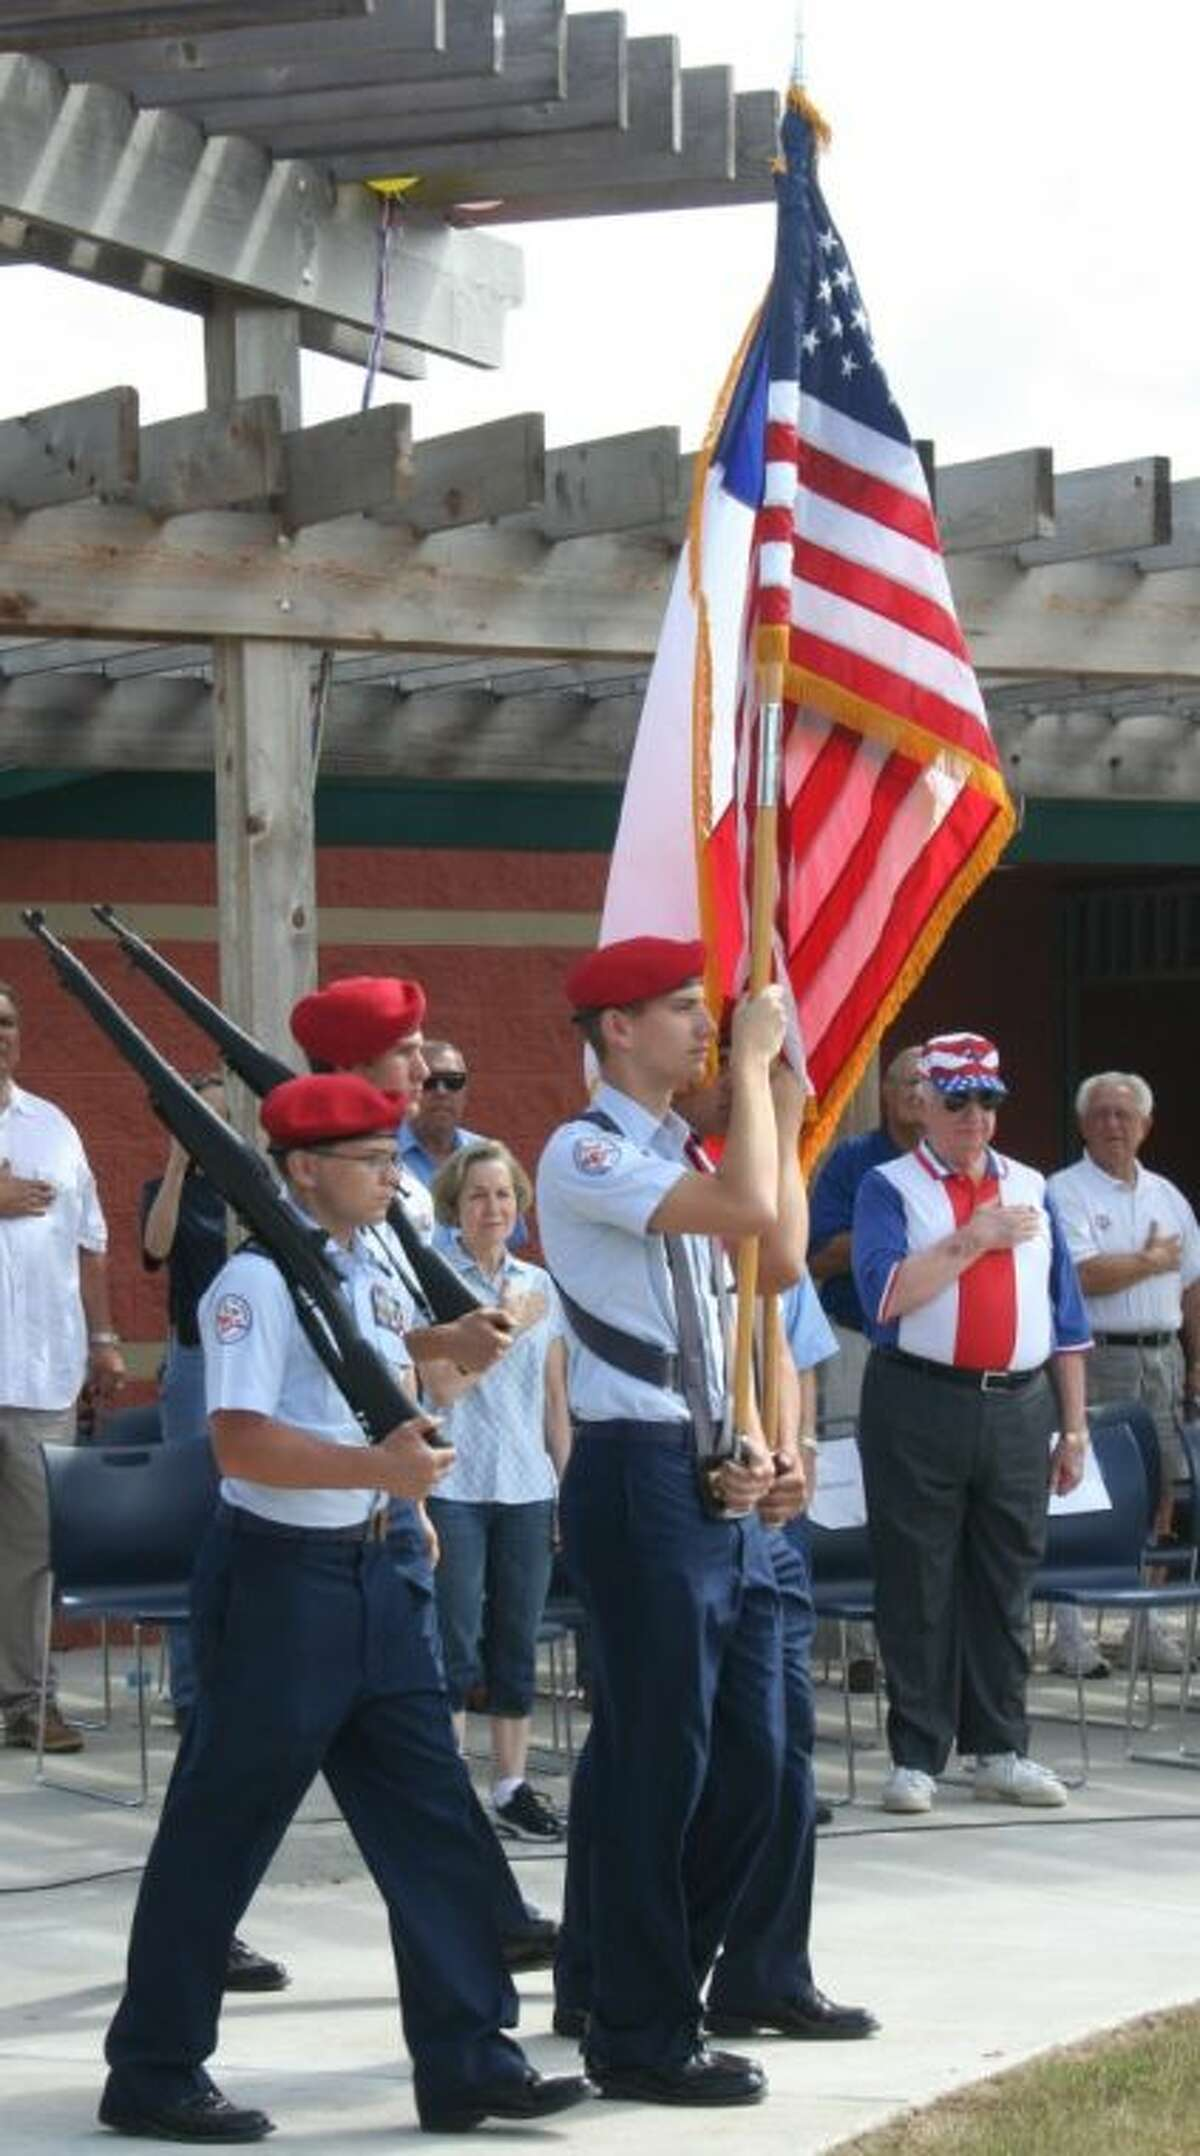 Cleveland AFJROTC cadets present the colors during the opening ceremony for the Cleveland Municipal Park.